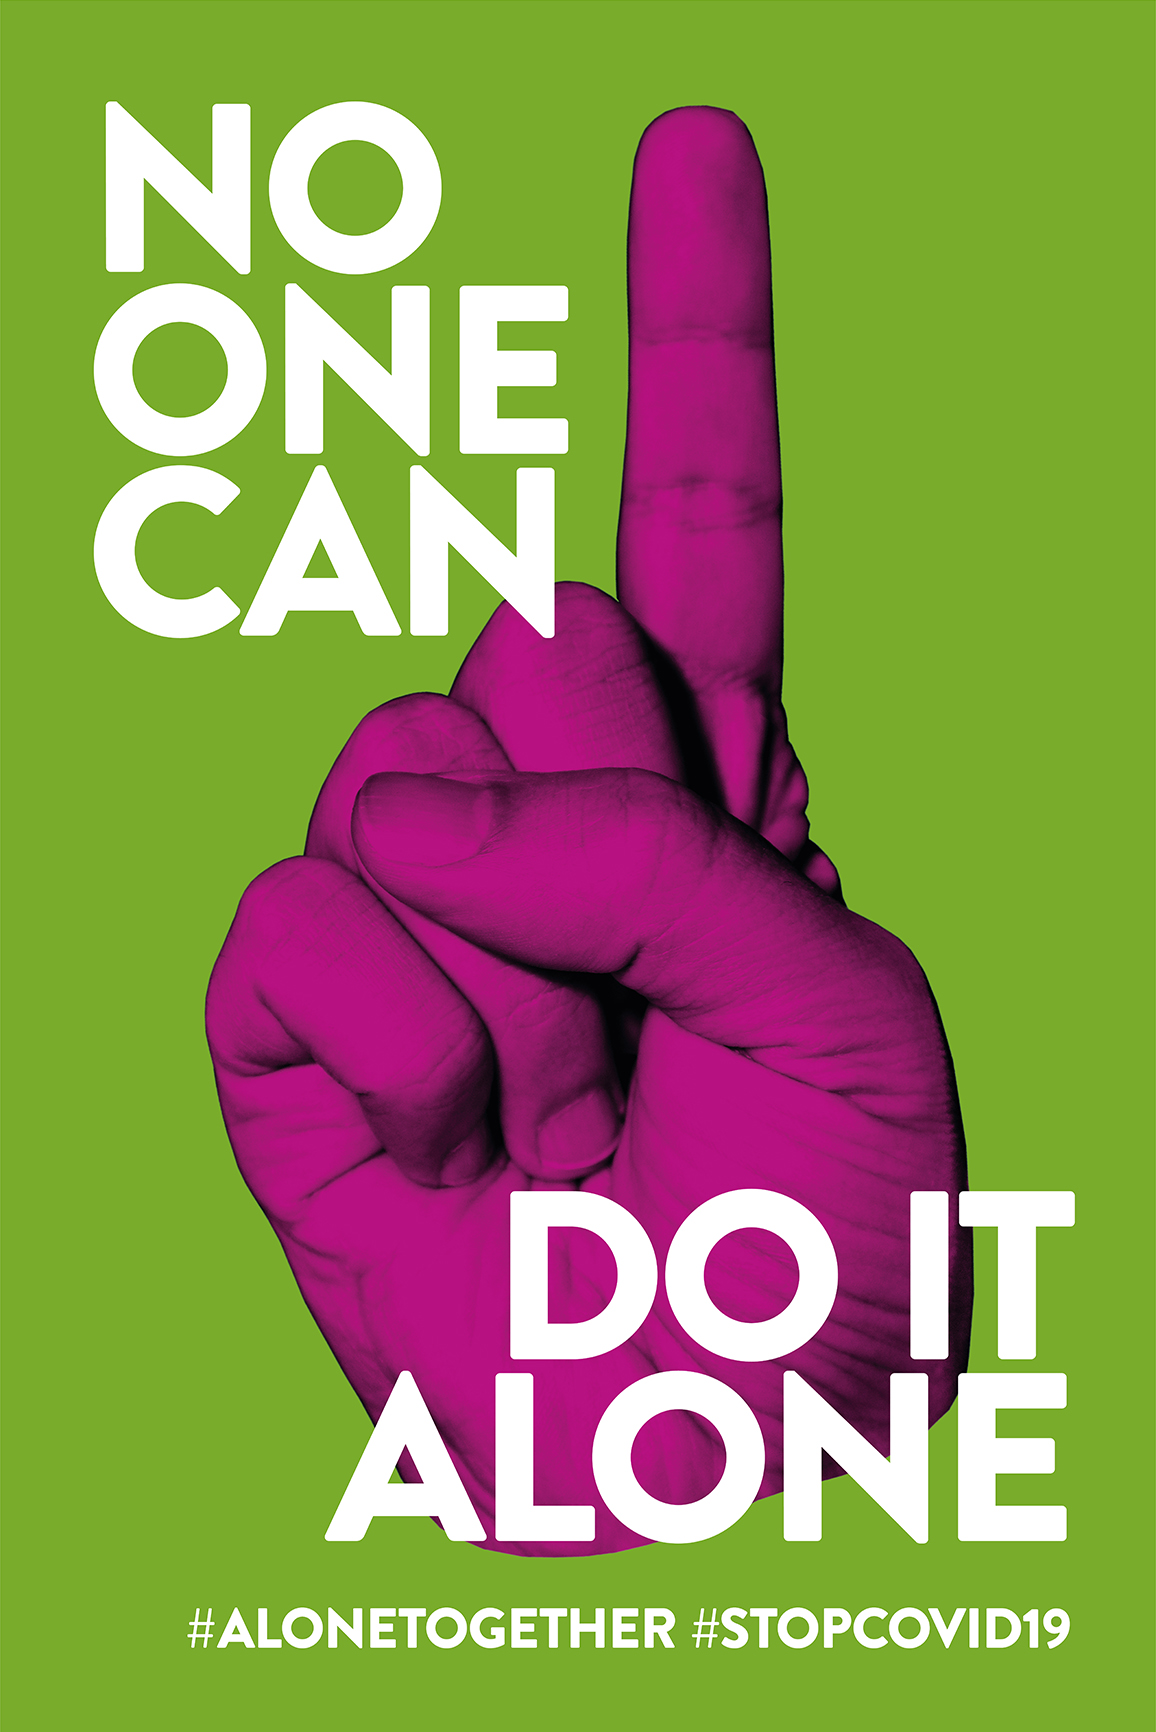 No one can do it alone